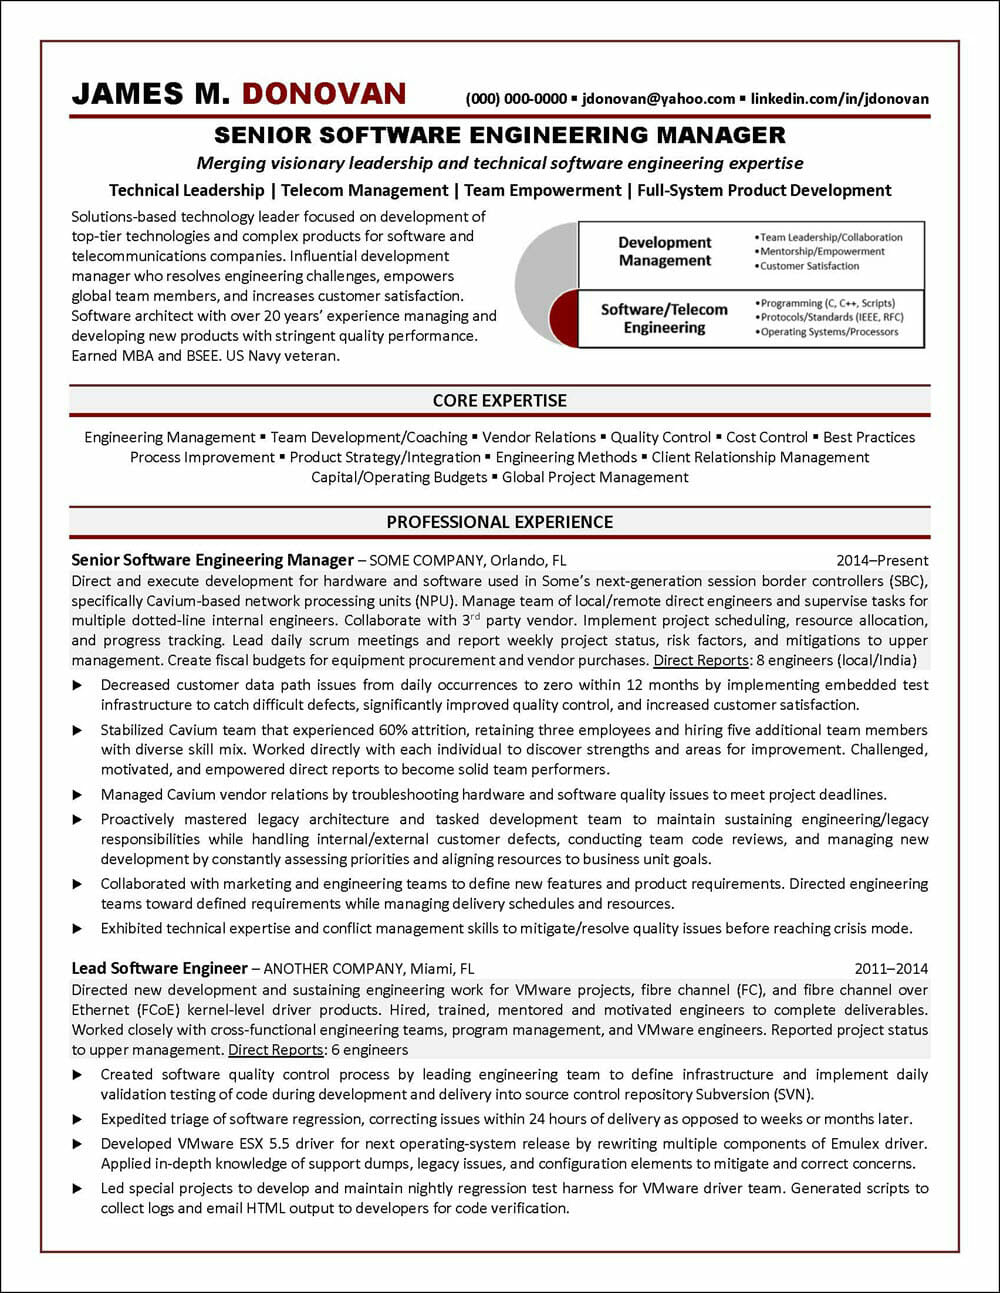 software engineer resume example distinctive career services objective of engineering Resume Objective Of Software Engineer Resume